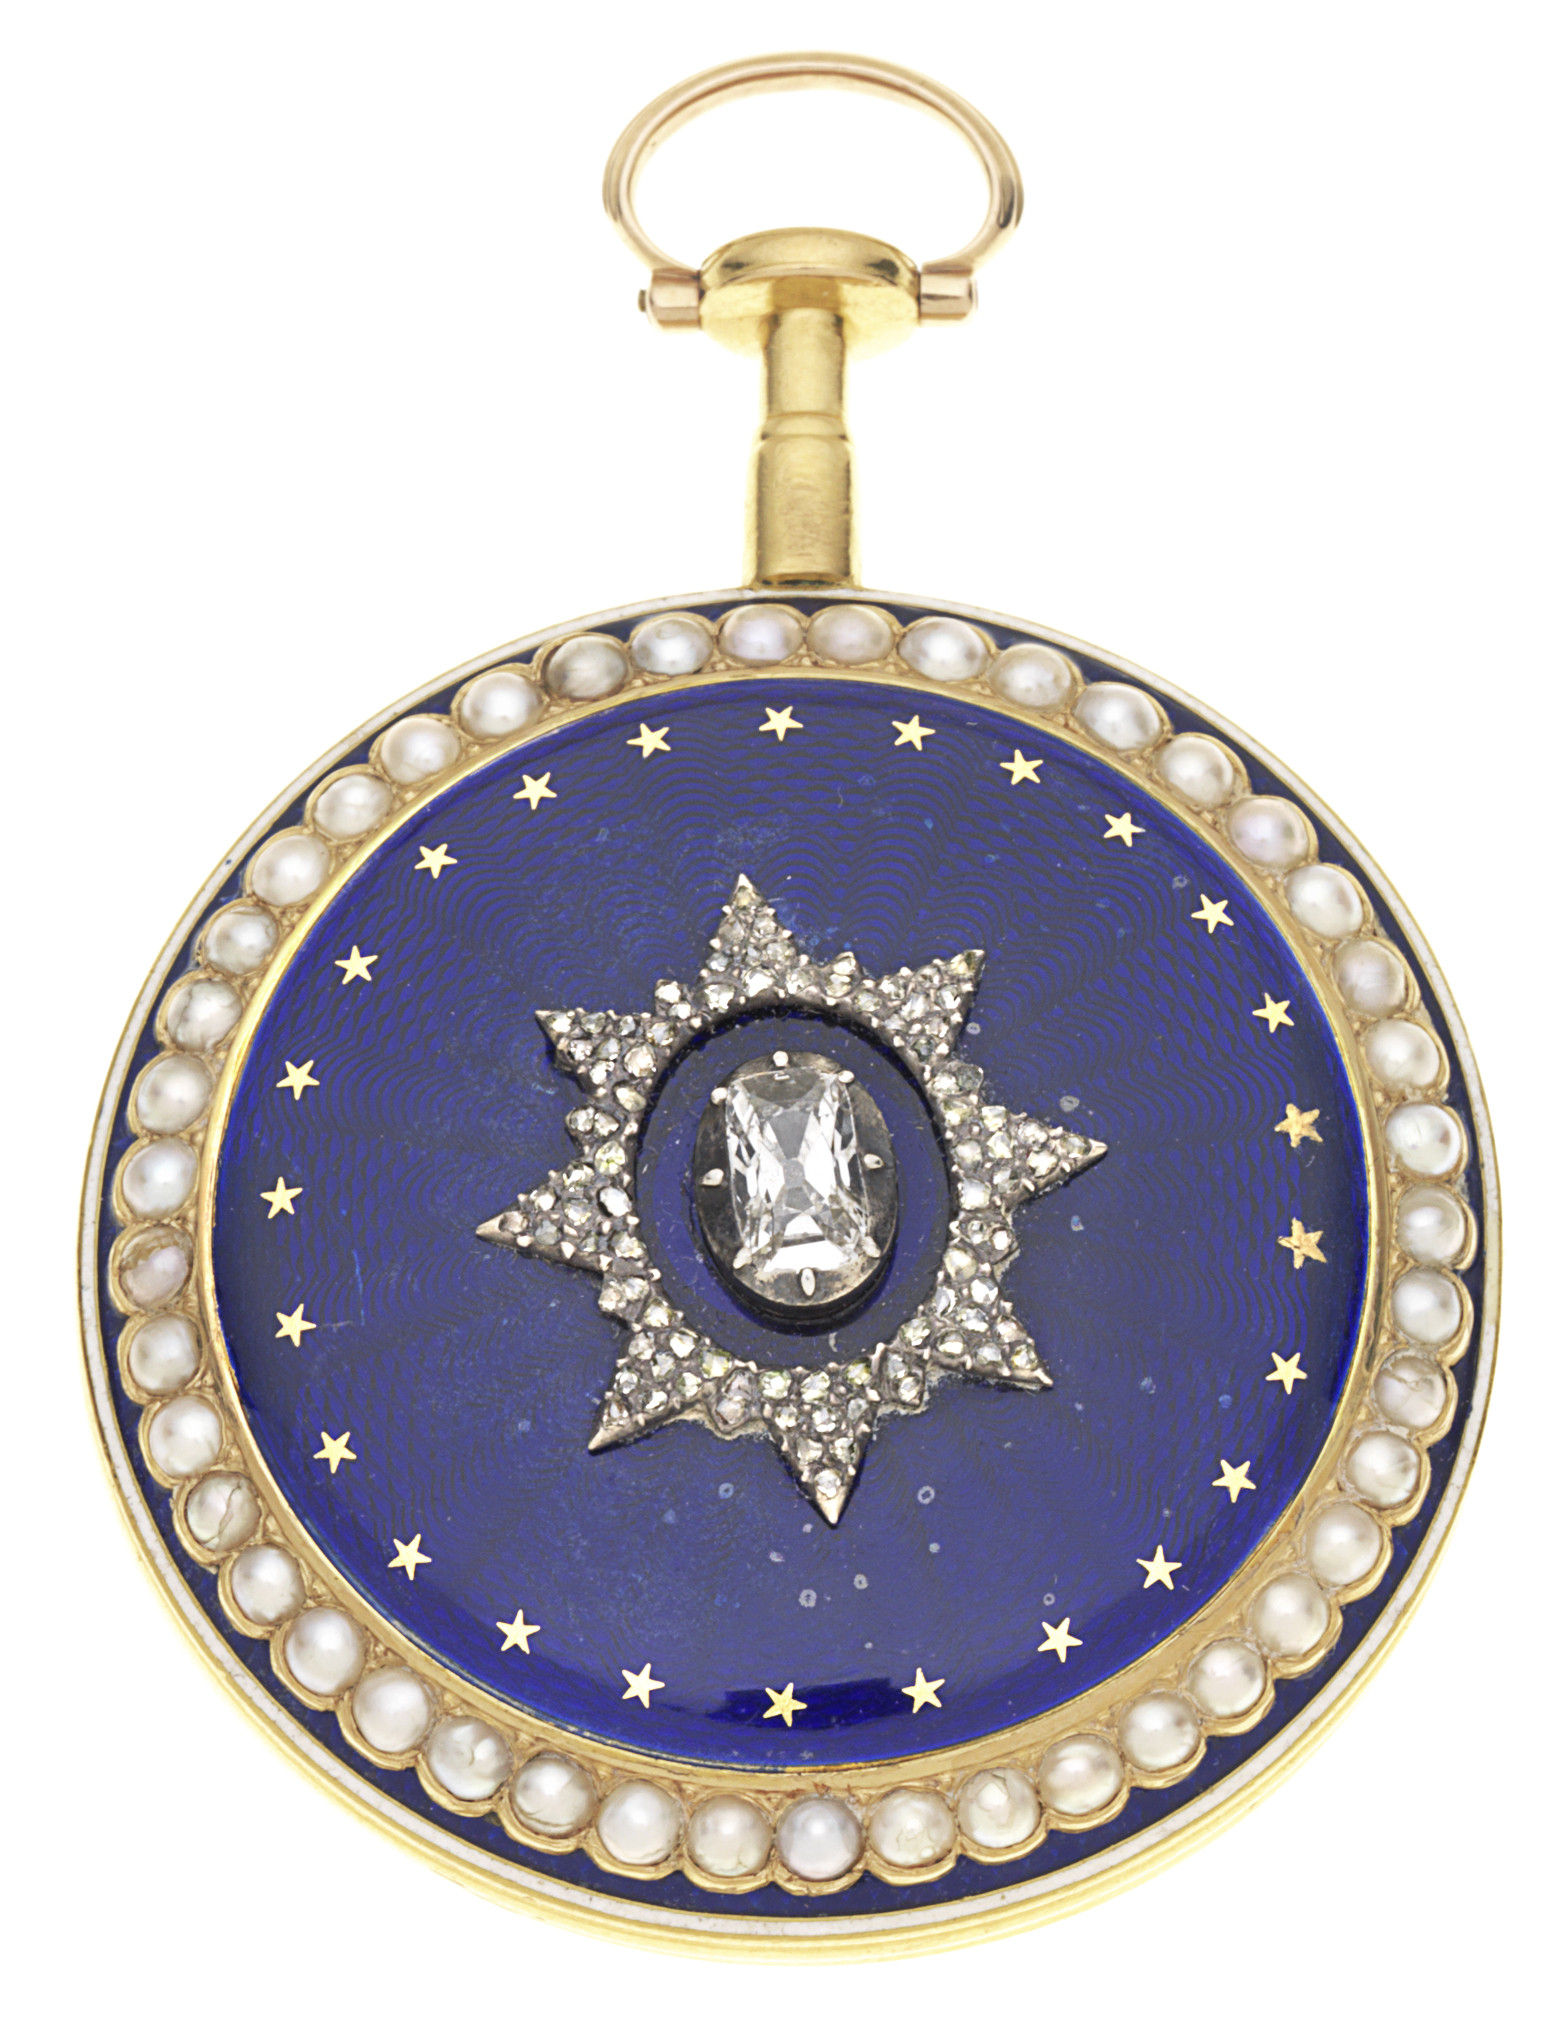 Johnson, Grays Inn Passage gold, enamel and seed pearl set key wind open face pocket watch with £1,500-2,000 estimate.